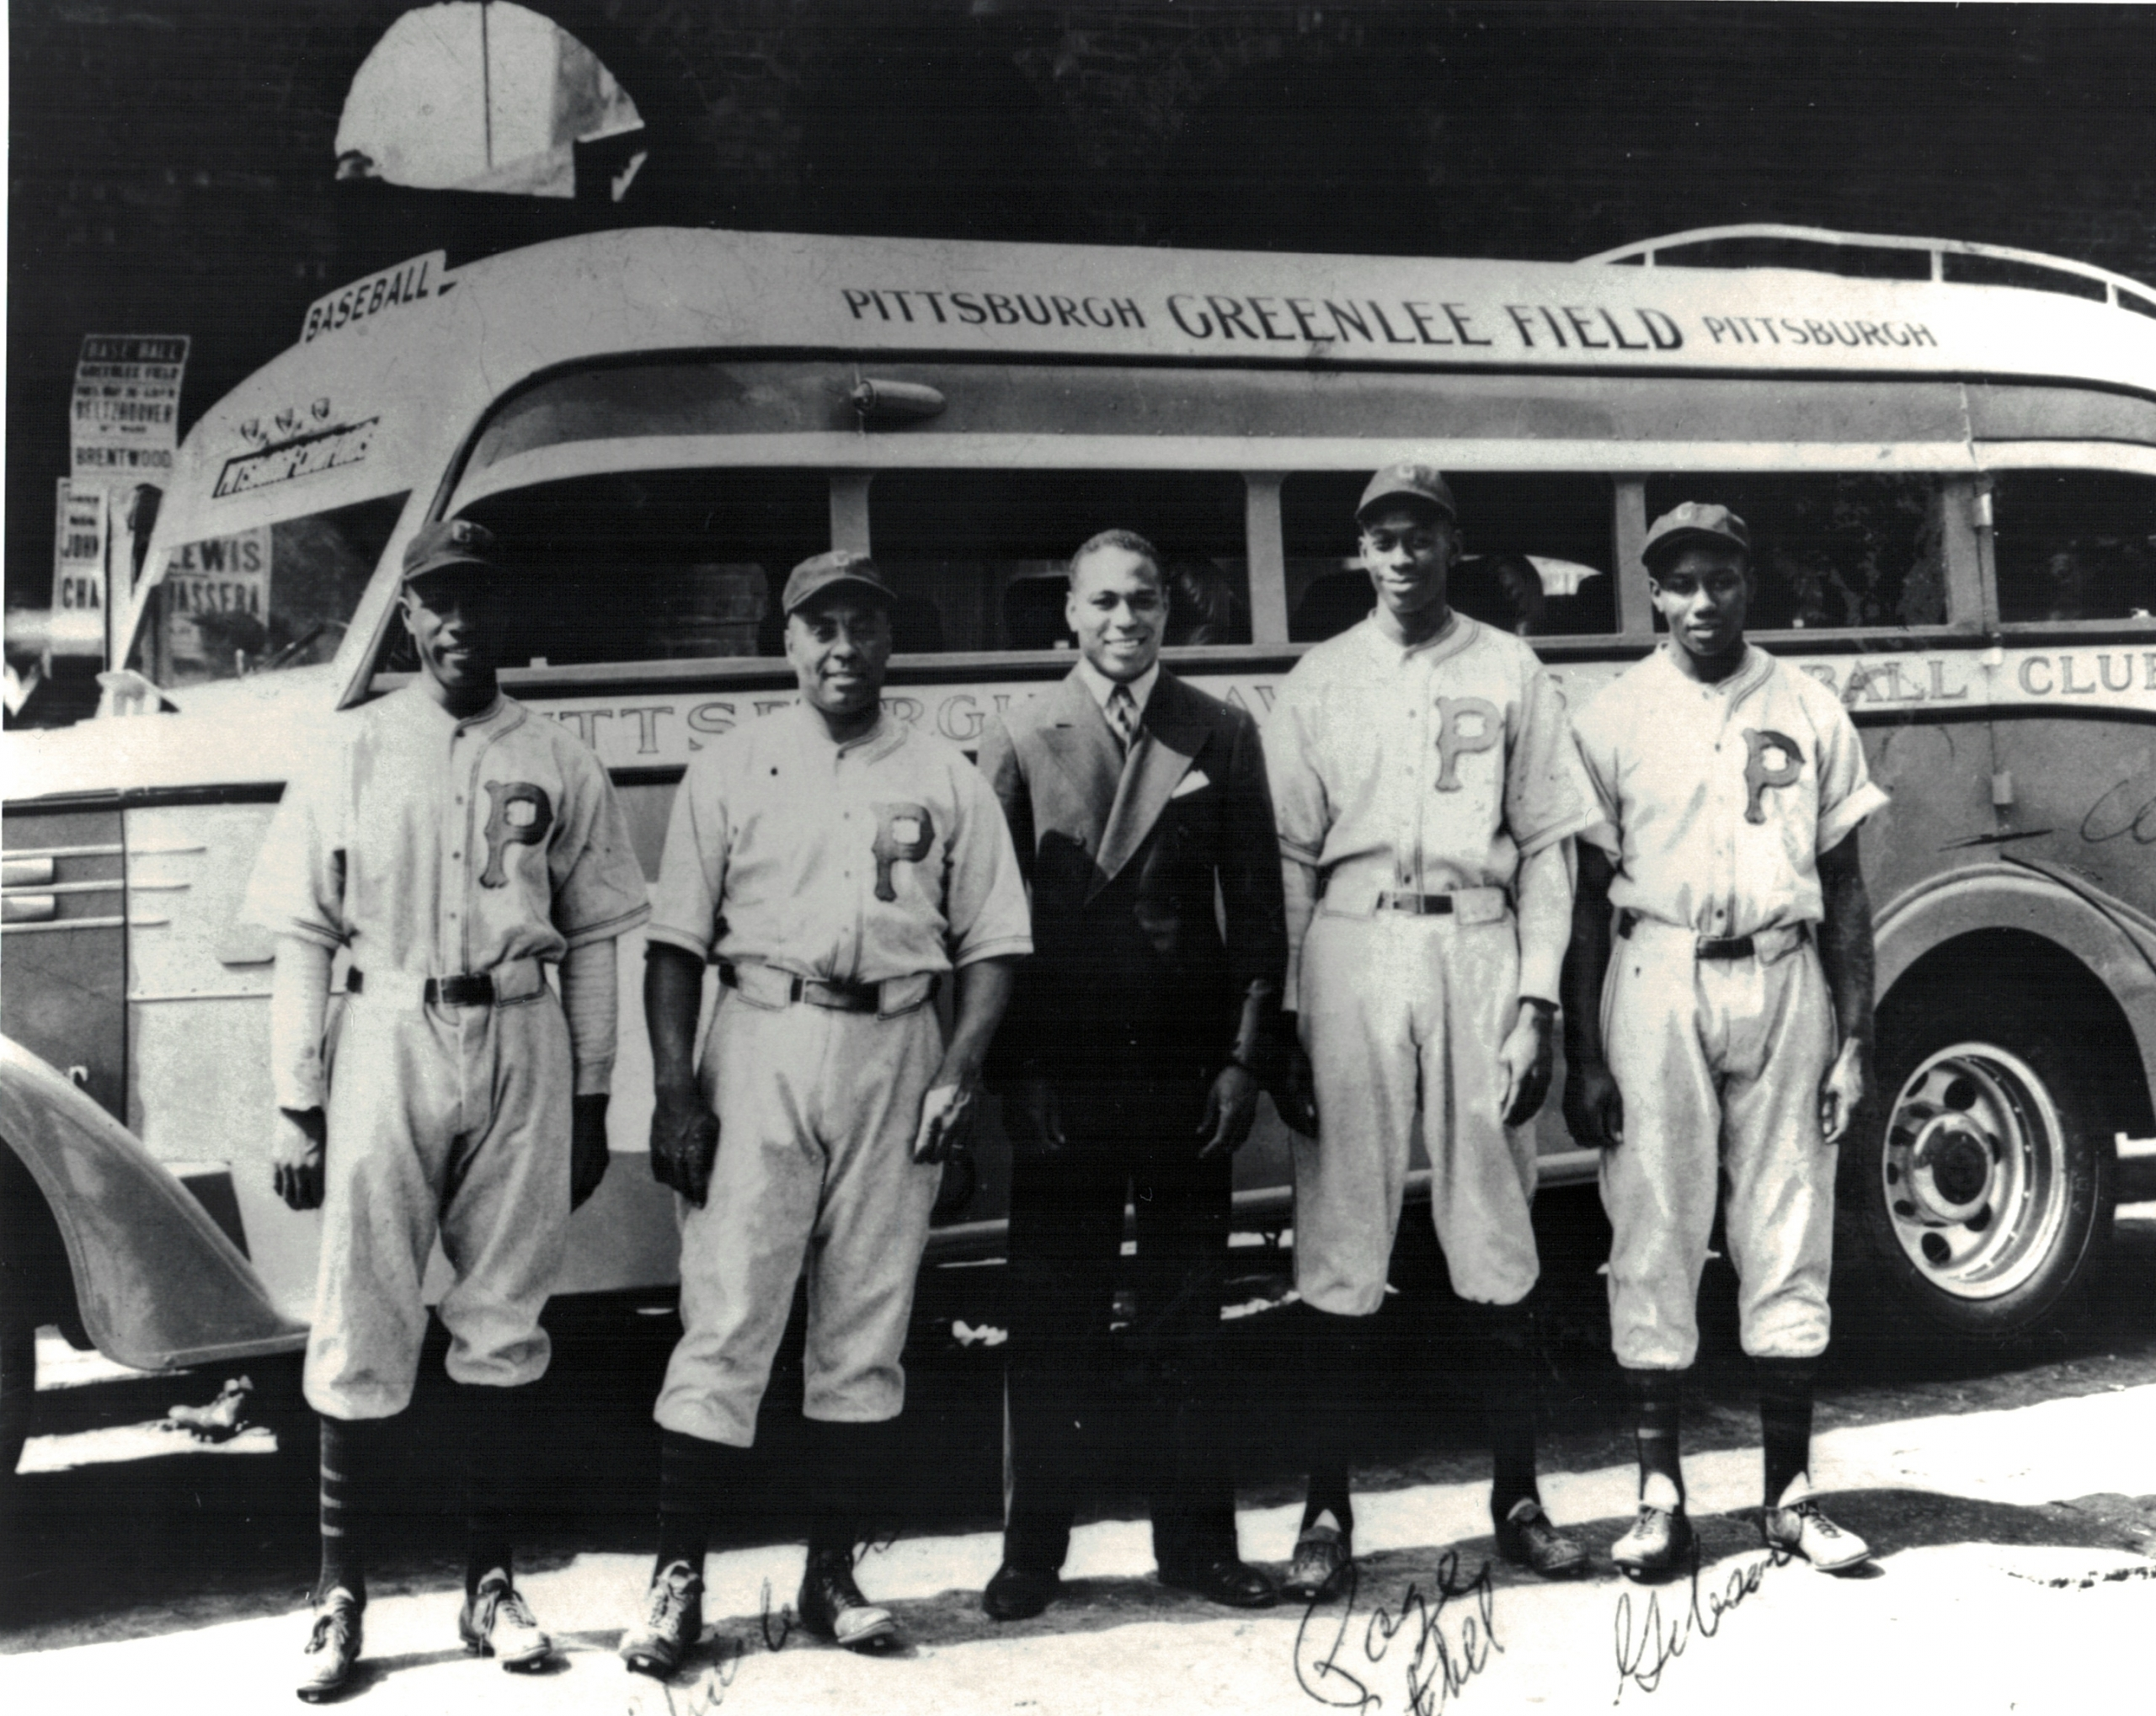 From left, Leroy Matlock, Oscar Charleston, boxer John Henry Lewis, Satchel Paige, and Josh Gibson pose in front of the team bus at Greenlee Field in Pittsburgh. (NOIRTECH RESEARCH, INC.)